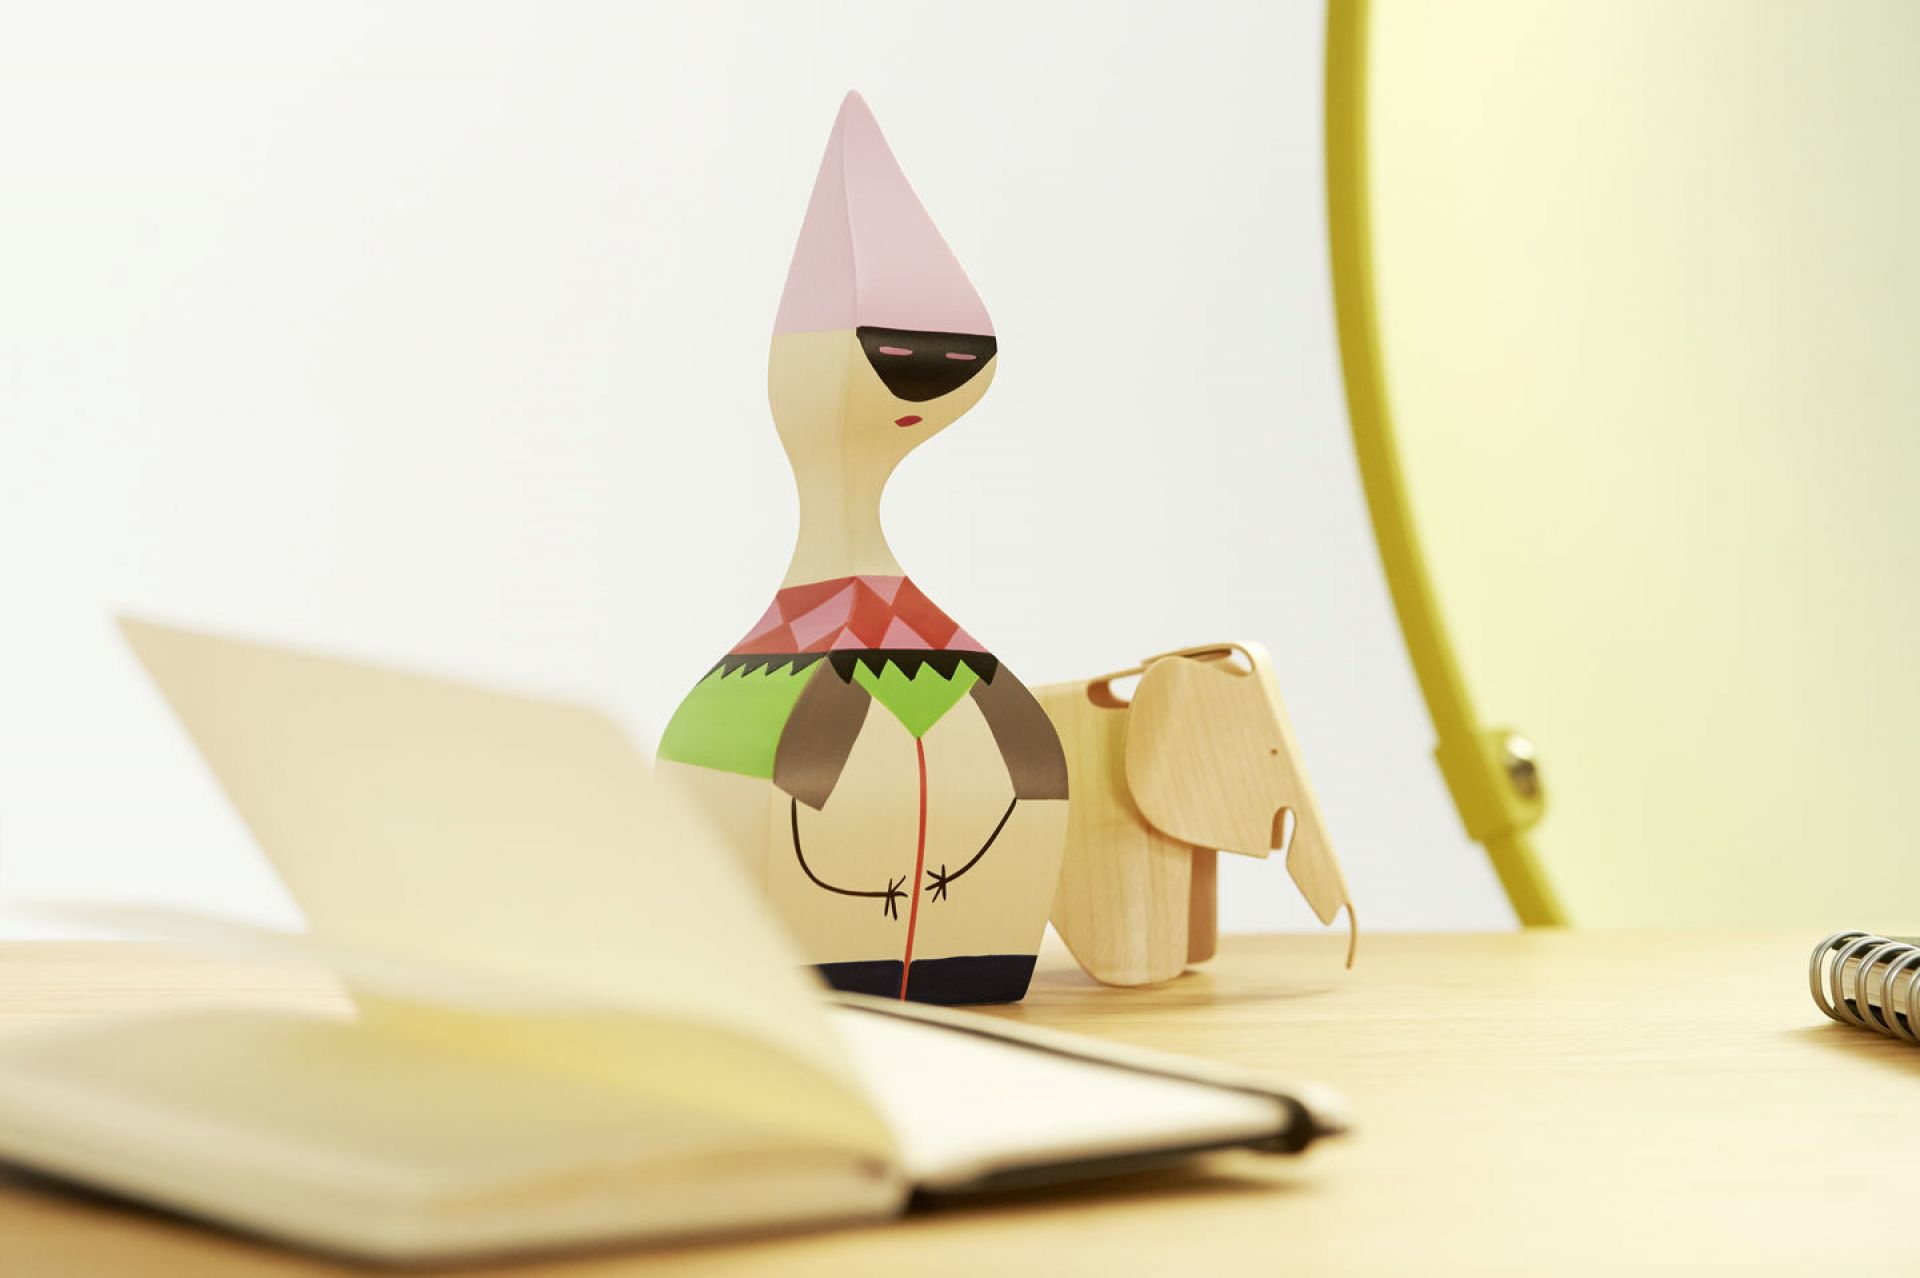 Wooden Dolls Wooden figure Vitra